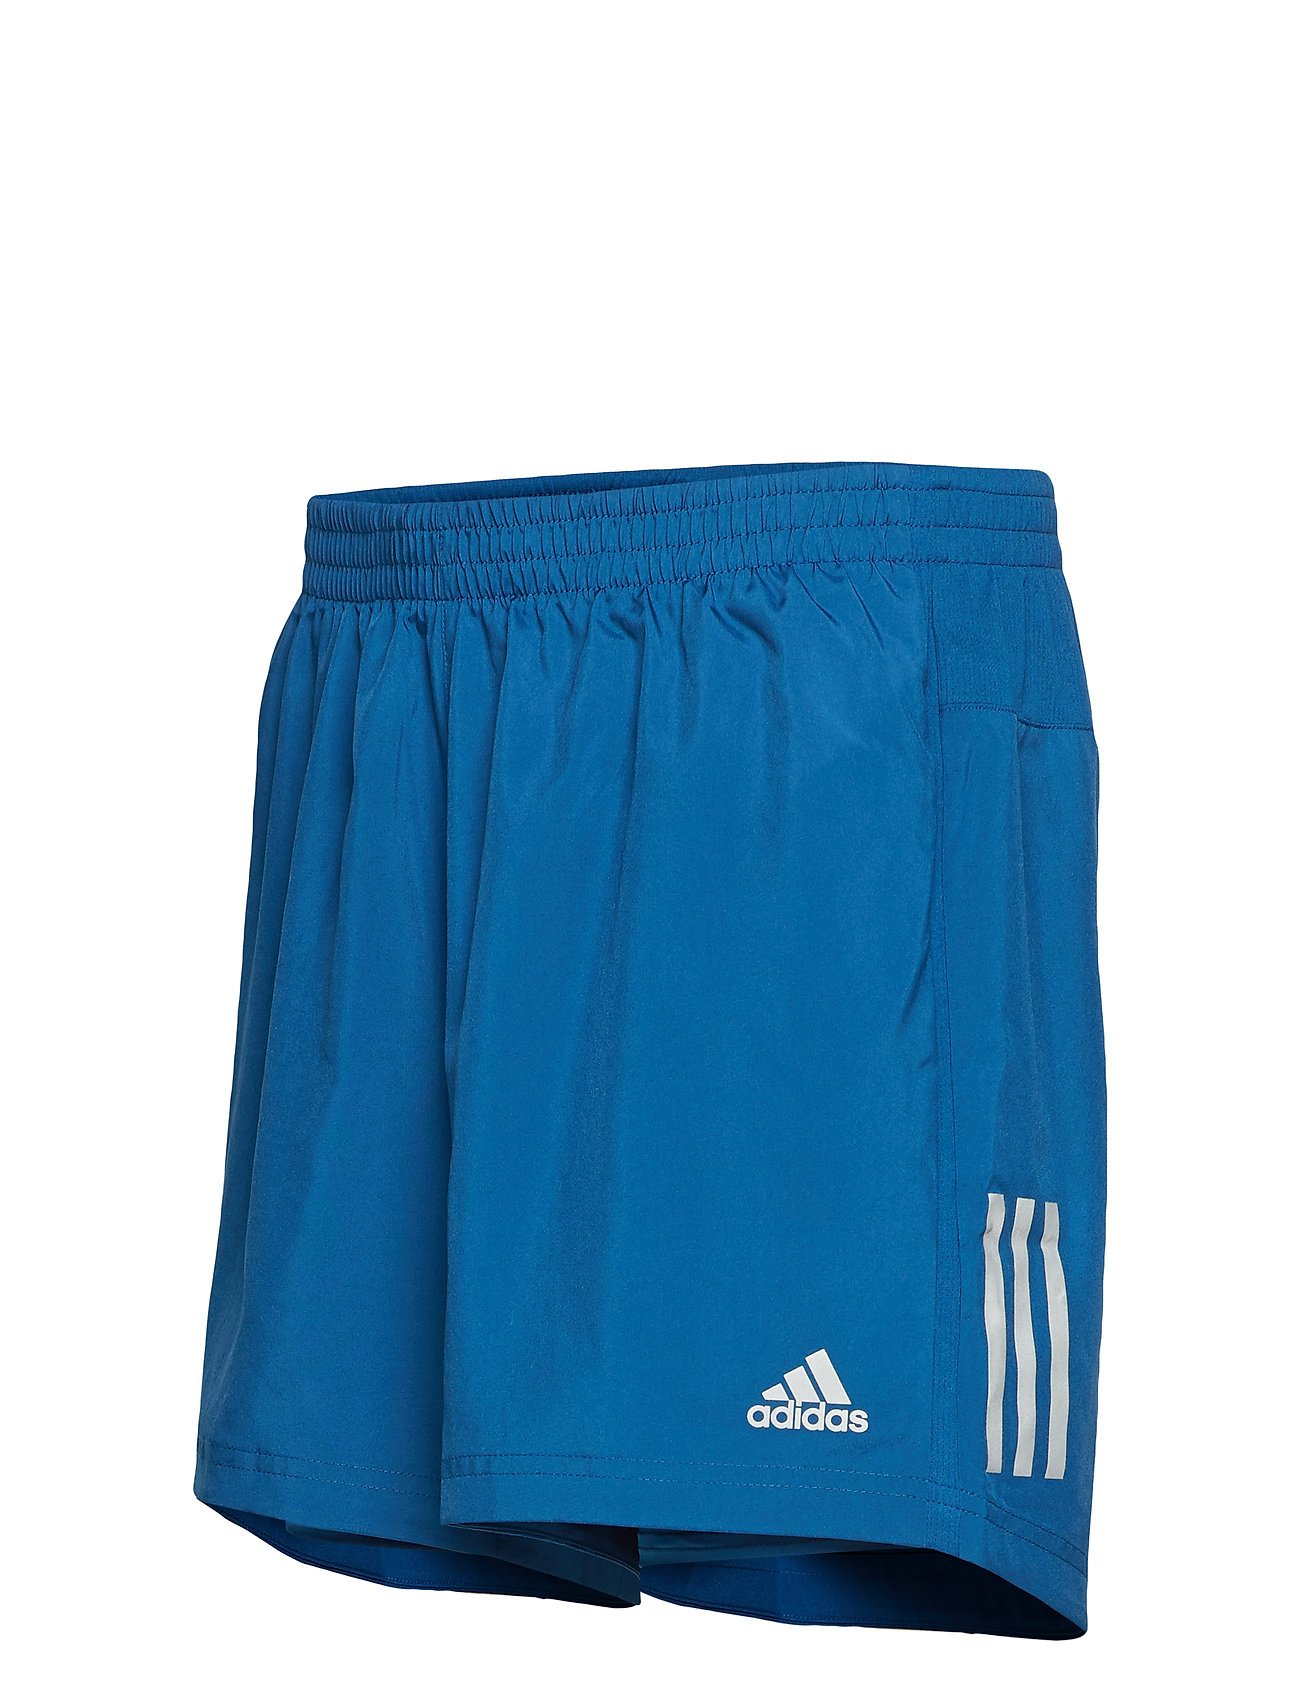 Own Performance The Own The 2n1legmarAdidas Run eCoBrxd